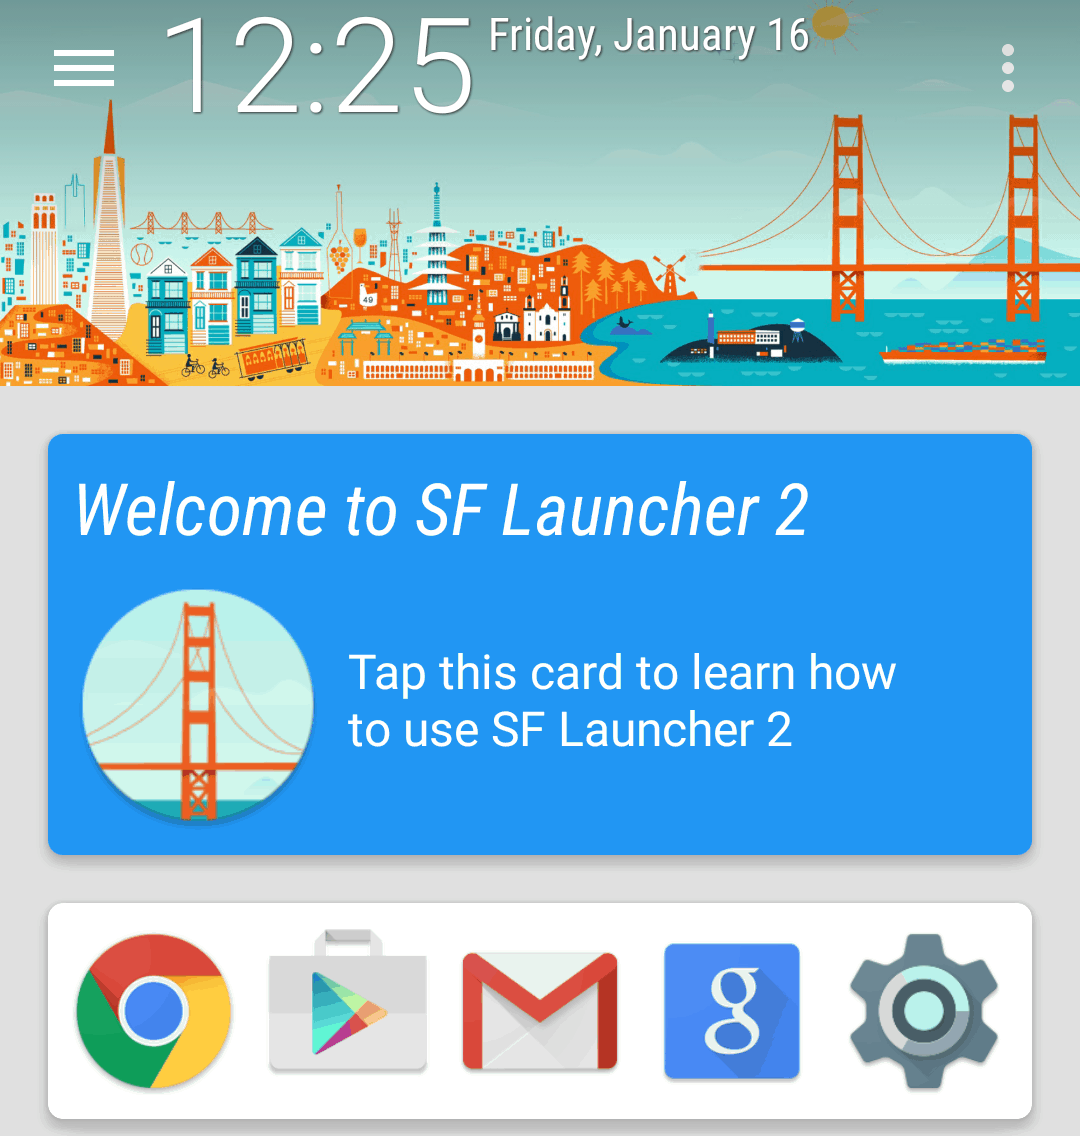 Welcome to SF Launcher 2